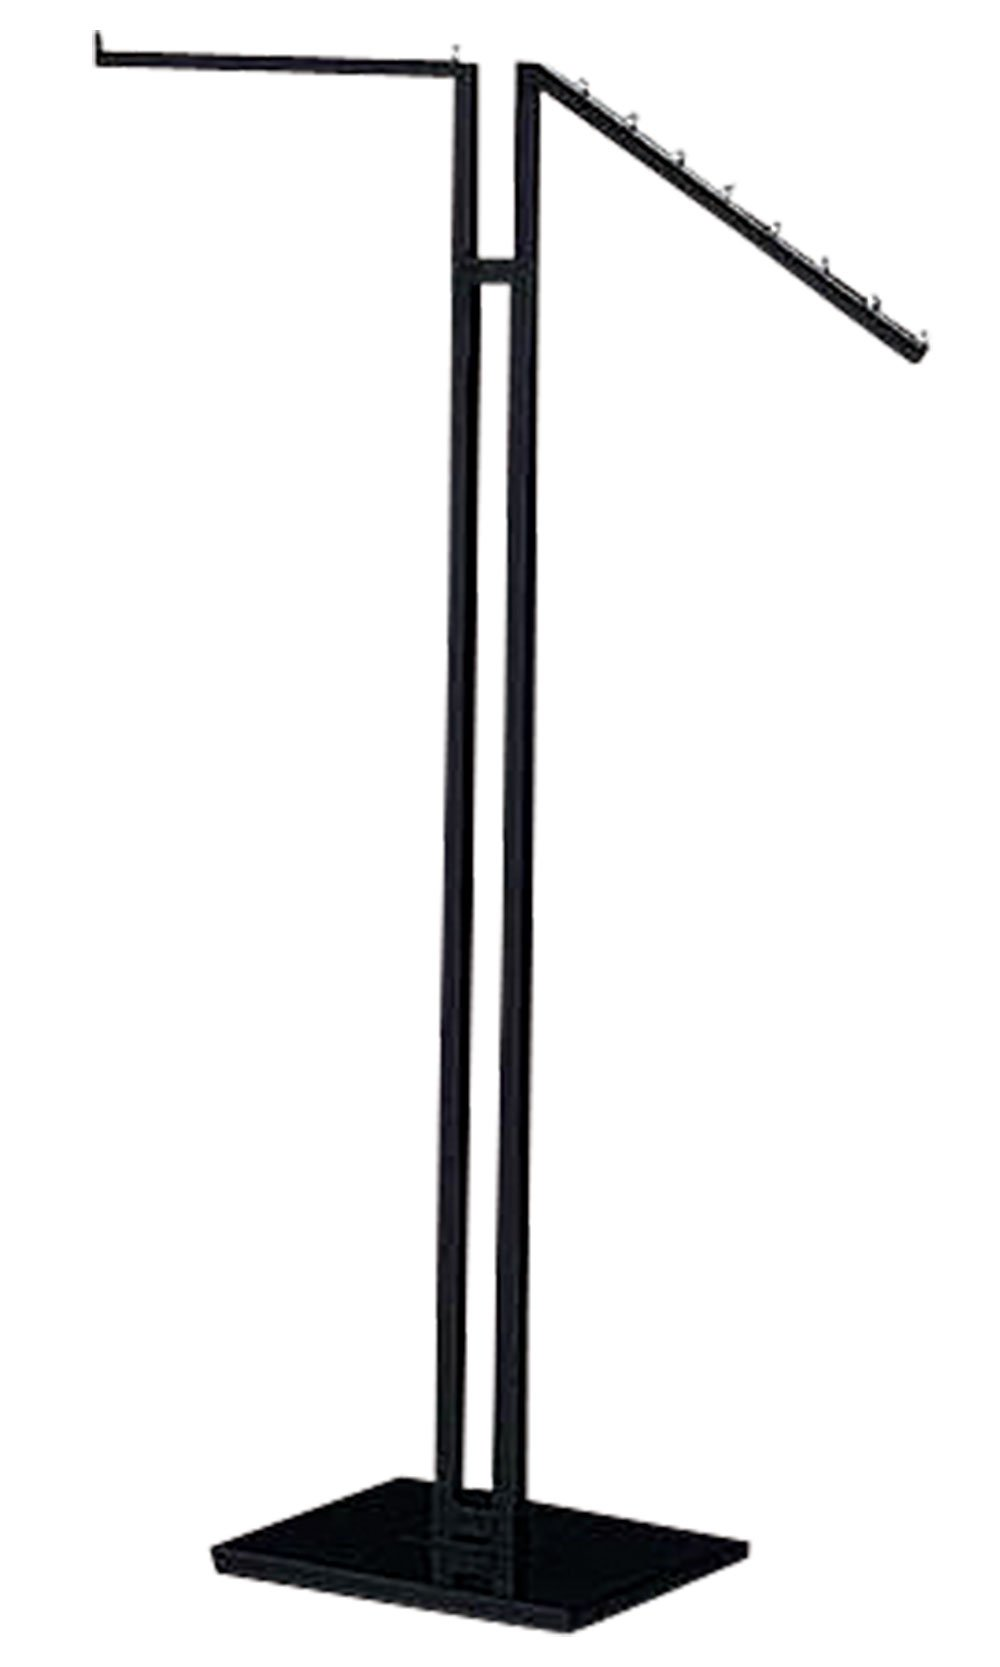 Clothing Rack - Black 2-Way - Straight & Slanted Arms with Black Matte and Chrome Accents